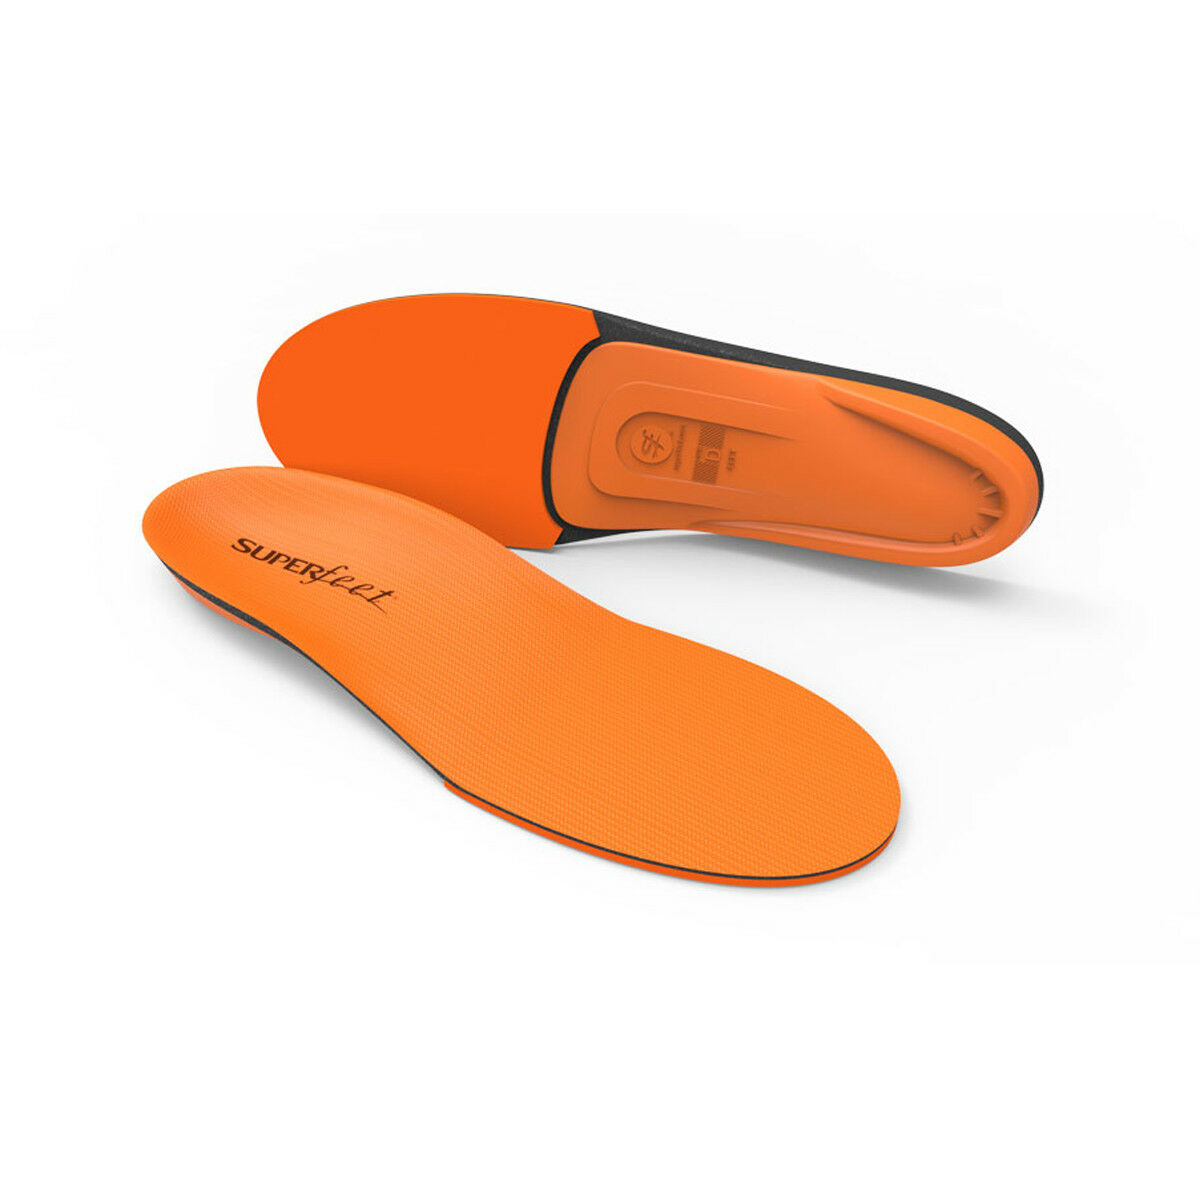 New Superfeet ORANGE Insole Arch Support Orthotic Shoe Inser